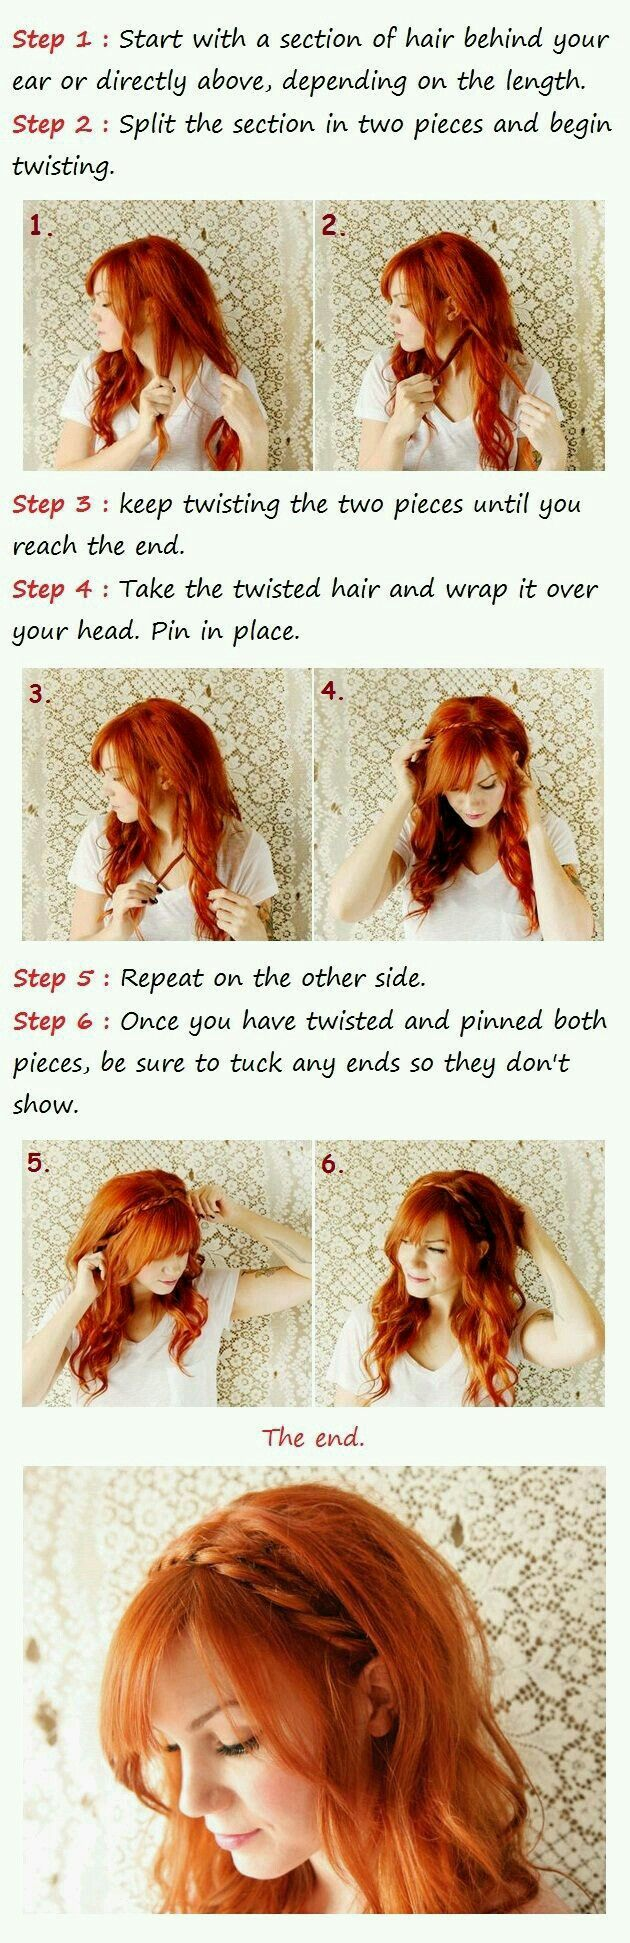 22 best Redhead girls images on Pinterest | Red heads, Redhead girl ...